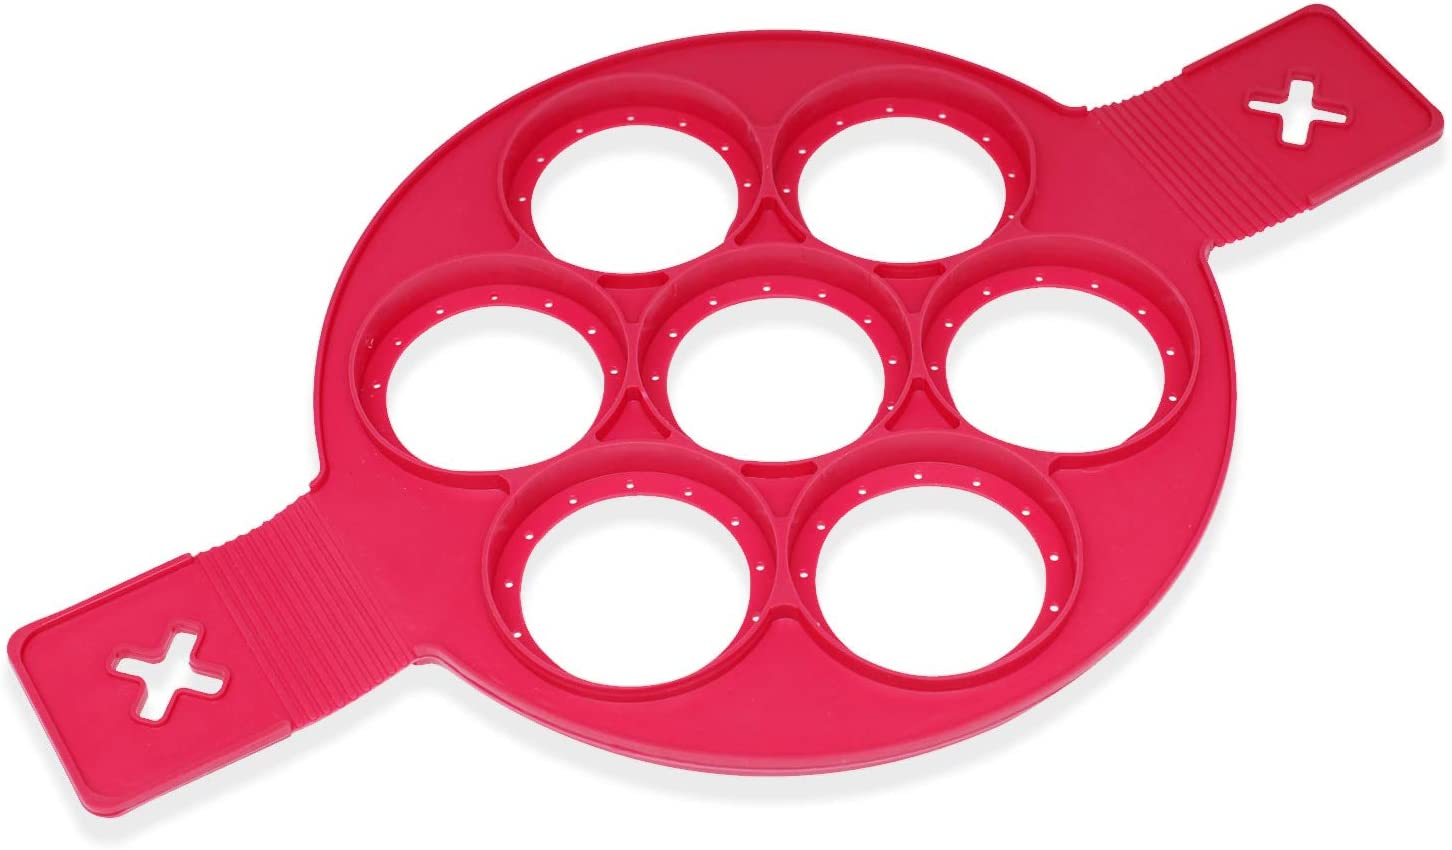 Red Silicone Pancake Mold, Non-Stick 7 Cavity Mini Pancakes Maker and Fried Egg Rings Maker